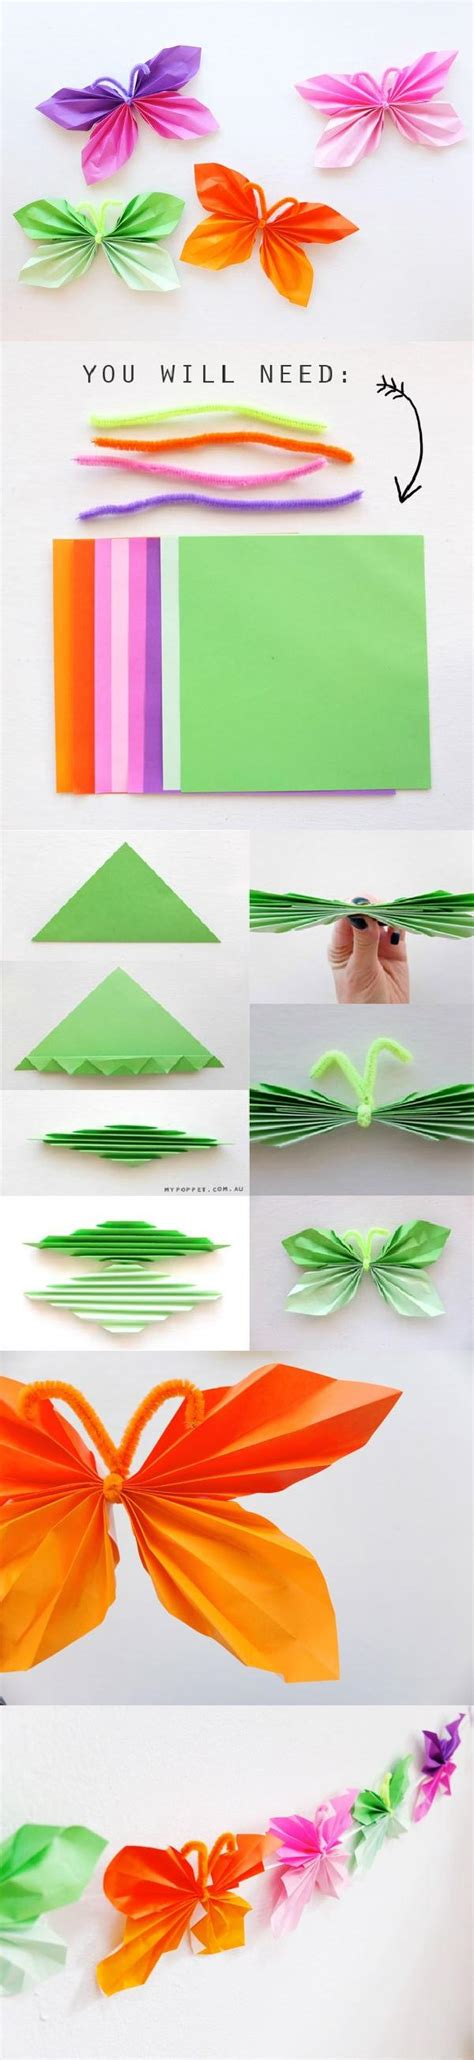 Craft Paper Butterflies - butterfly crafts for